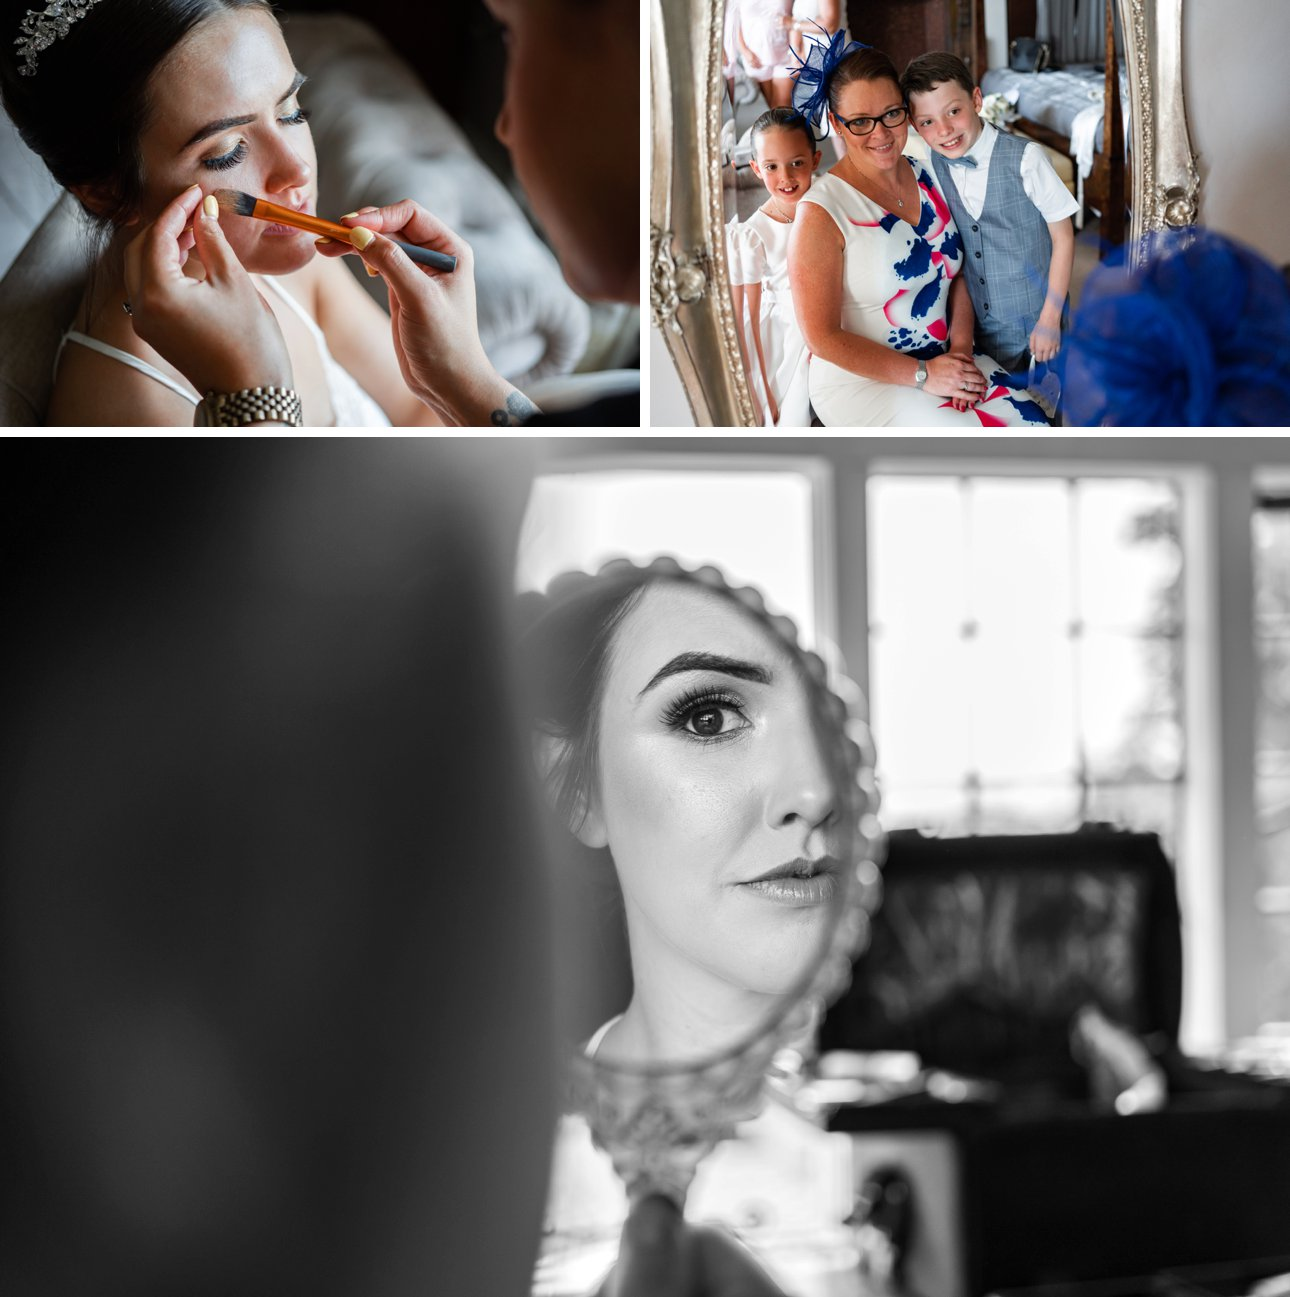 A bride gets ready for her Manor Elstree wedding on a hot summer day.